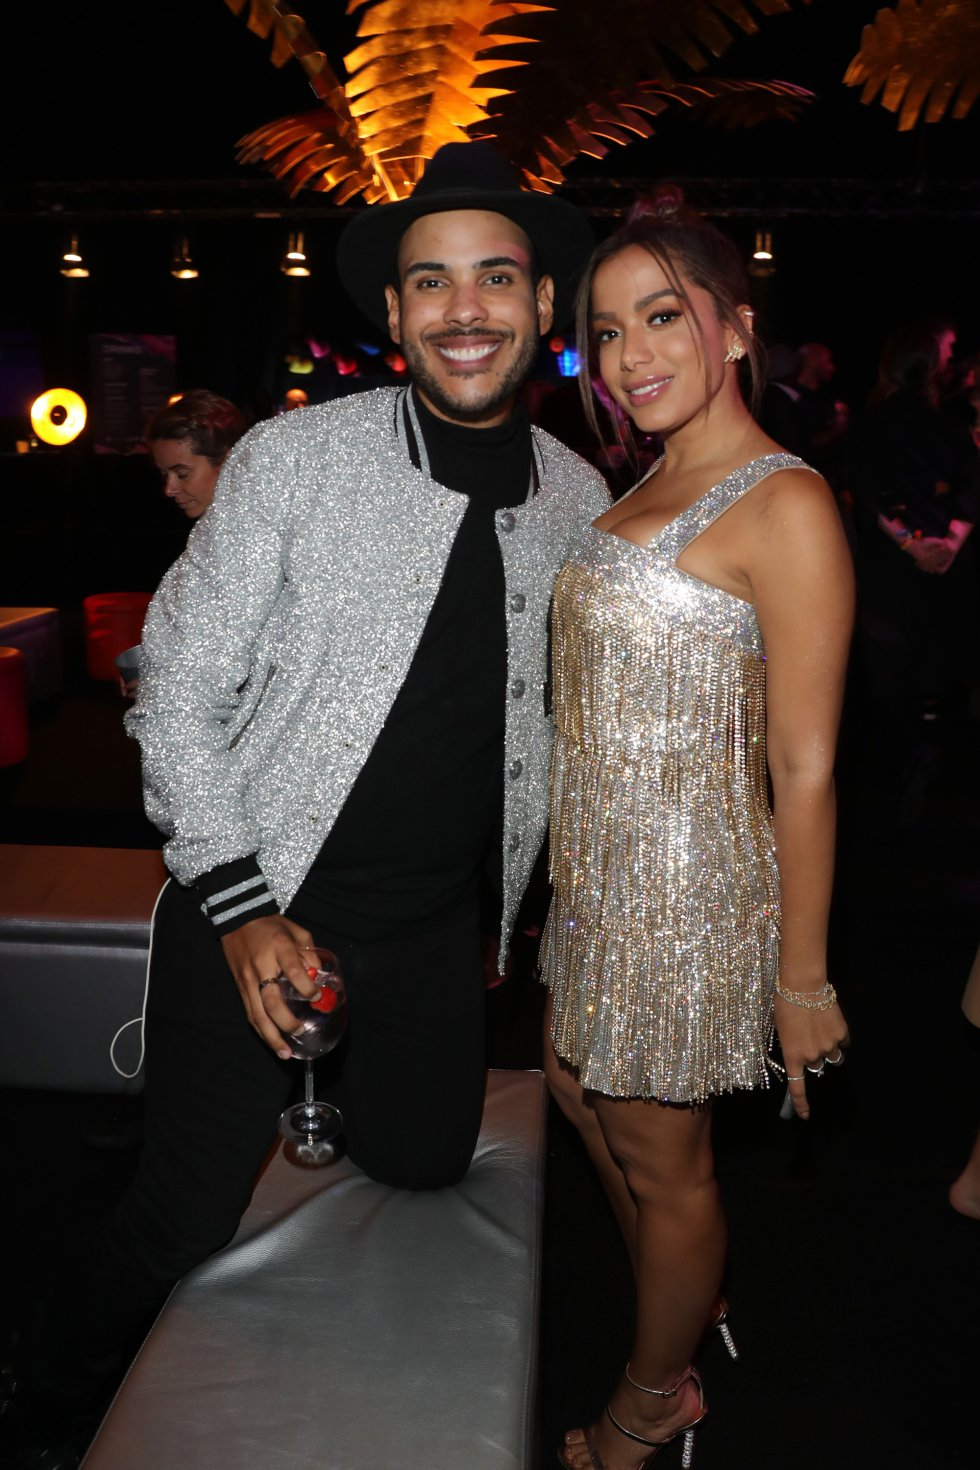 BILBAO, SPAIN - NOVEMBER 04:  (L-R) Hugo Gloss and Anitta during the MTV EMAs 2018 after show party at Bilbao Exhibition Centre on November 4, 2018 in Bilbao, Spain.  (Photo by Andreas Rentz/Getty Images for MTV)